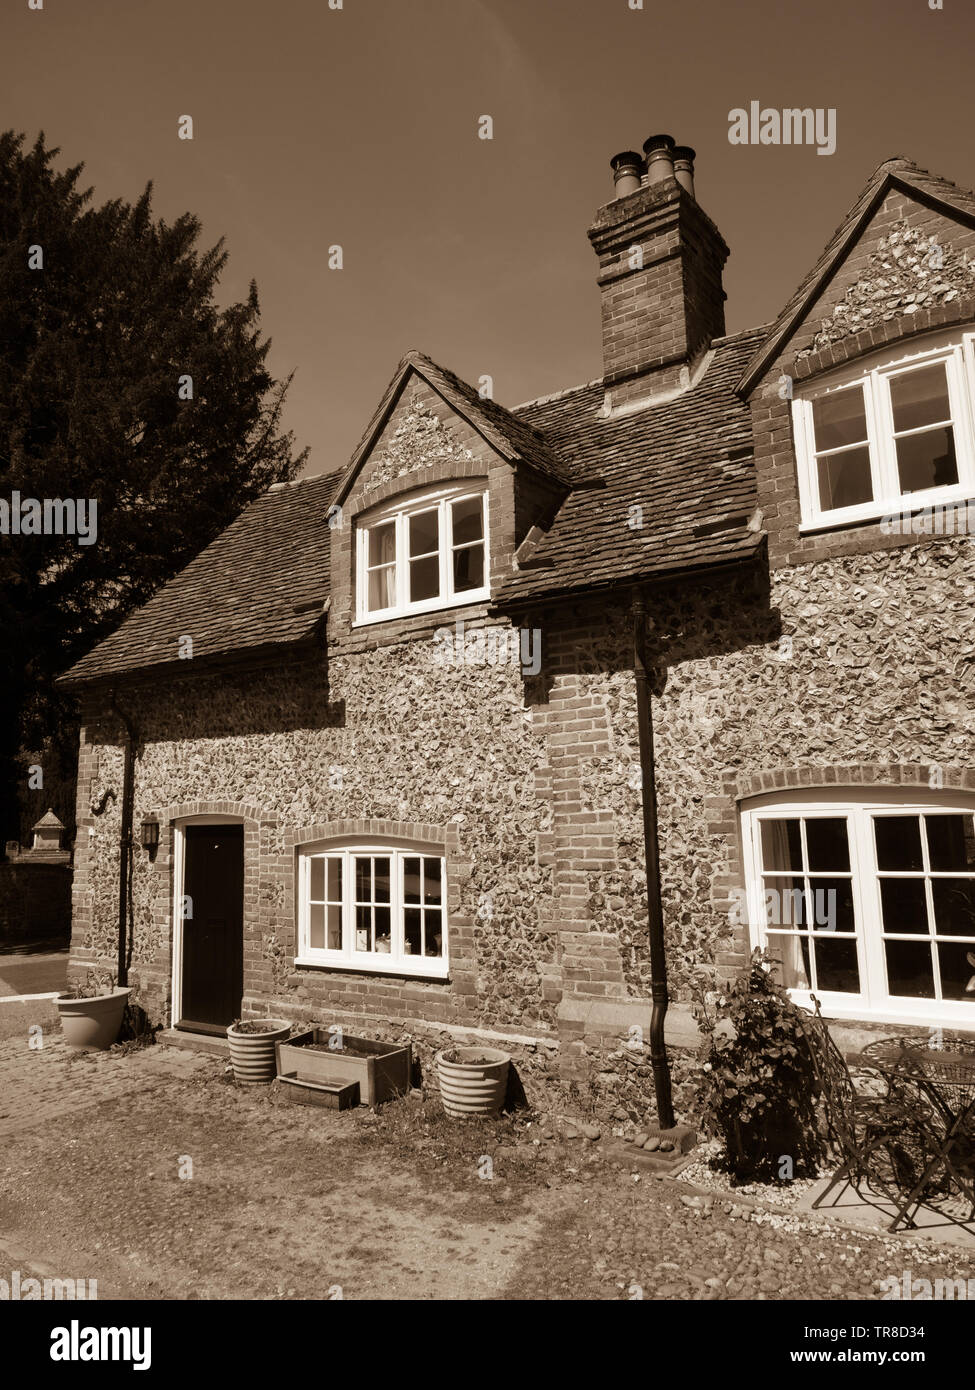 Row of Houses, Terraced Cottages, Rural Village Hanbilden, Buckinghamshire, England, UK, GB. - Stock Image